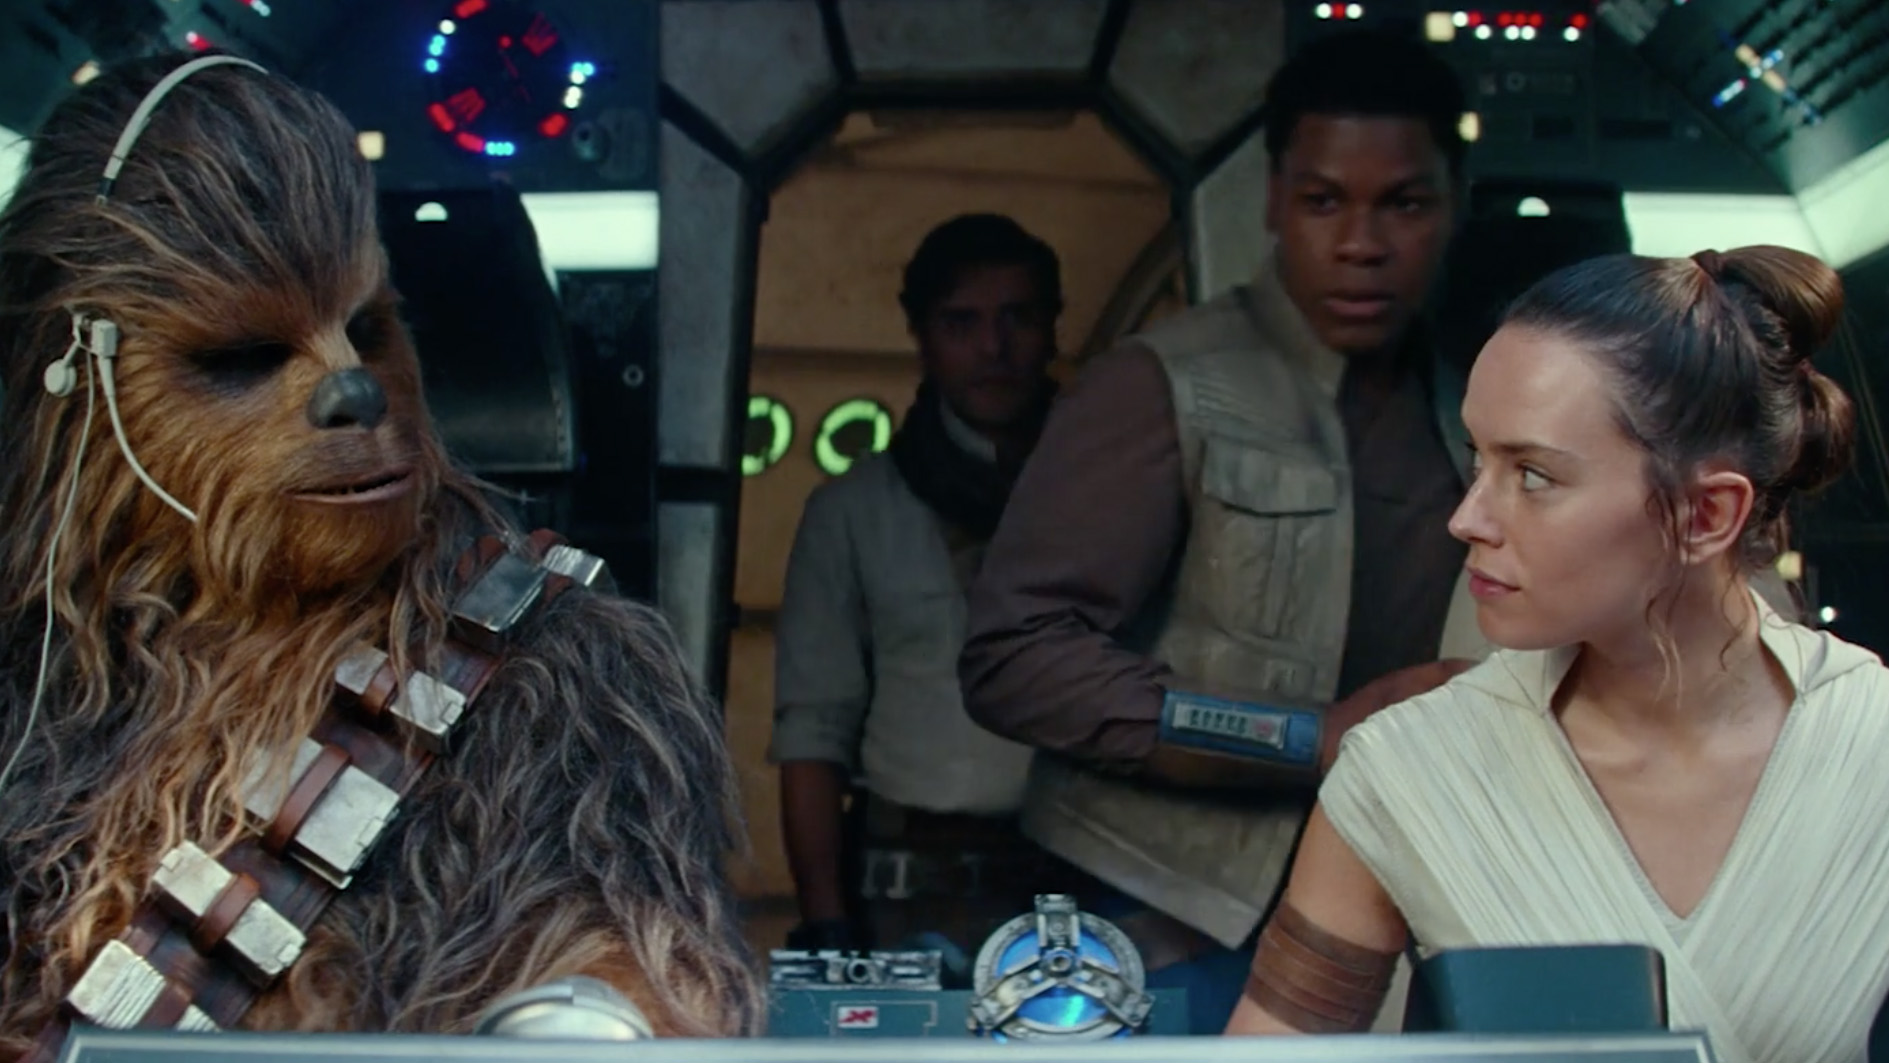 """""""Star Wars: The Rise of Skywalker"""" capped off Disney's landmark year, and the story of the Skywalkers, with a big opening weekend at the box office. (Credit: starwars.com via CNN Wire)"""